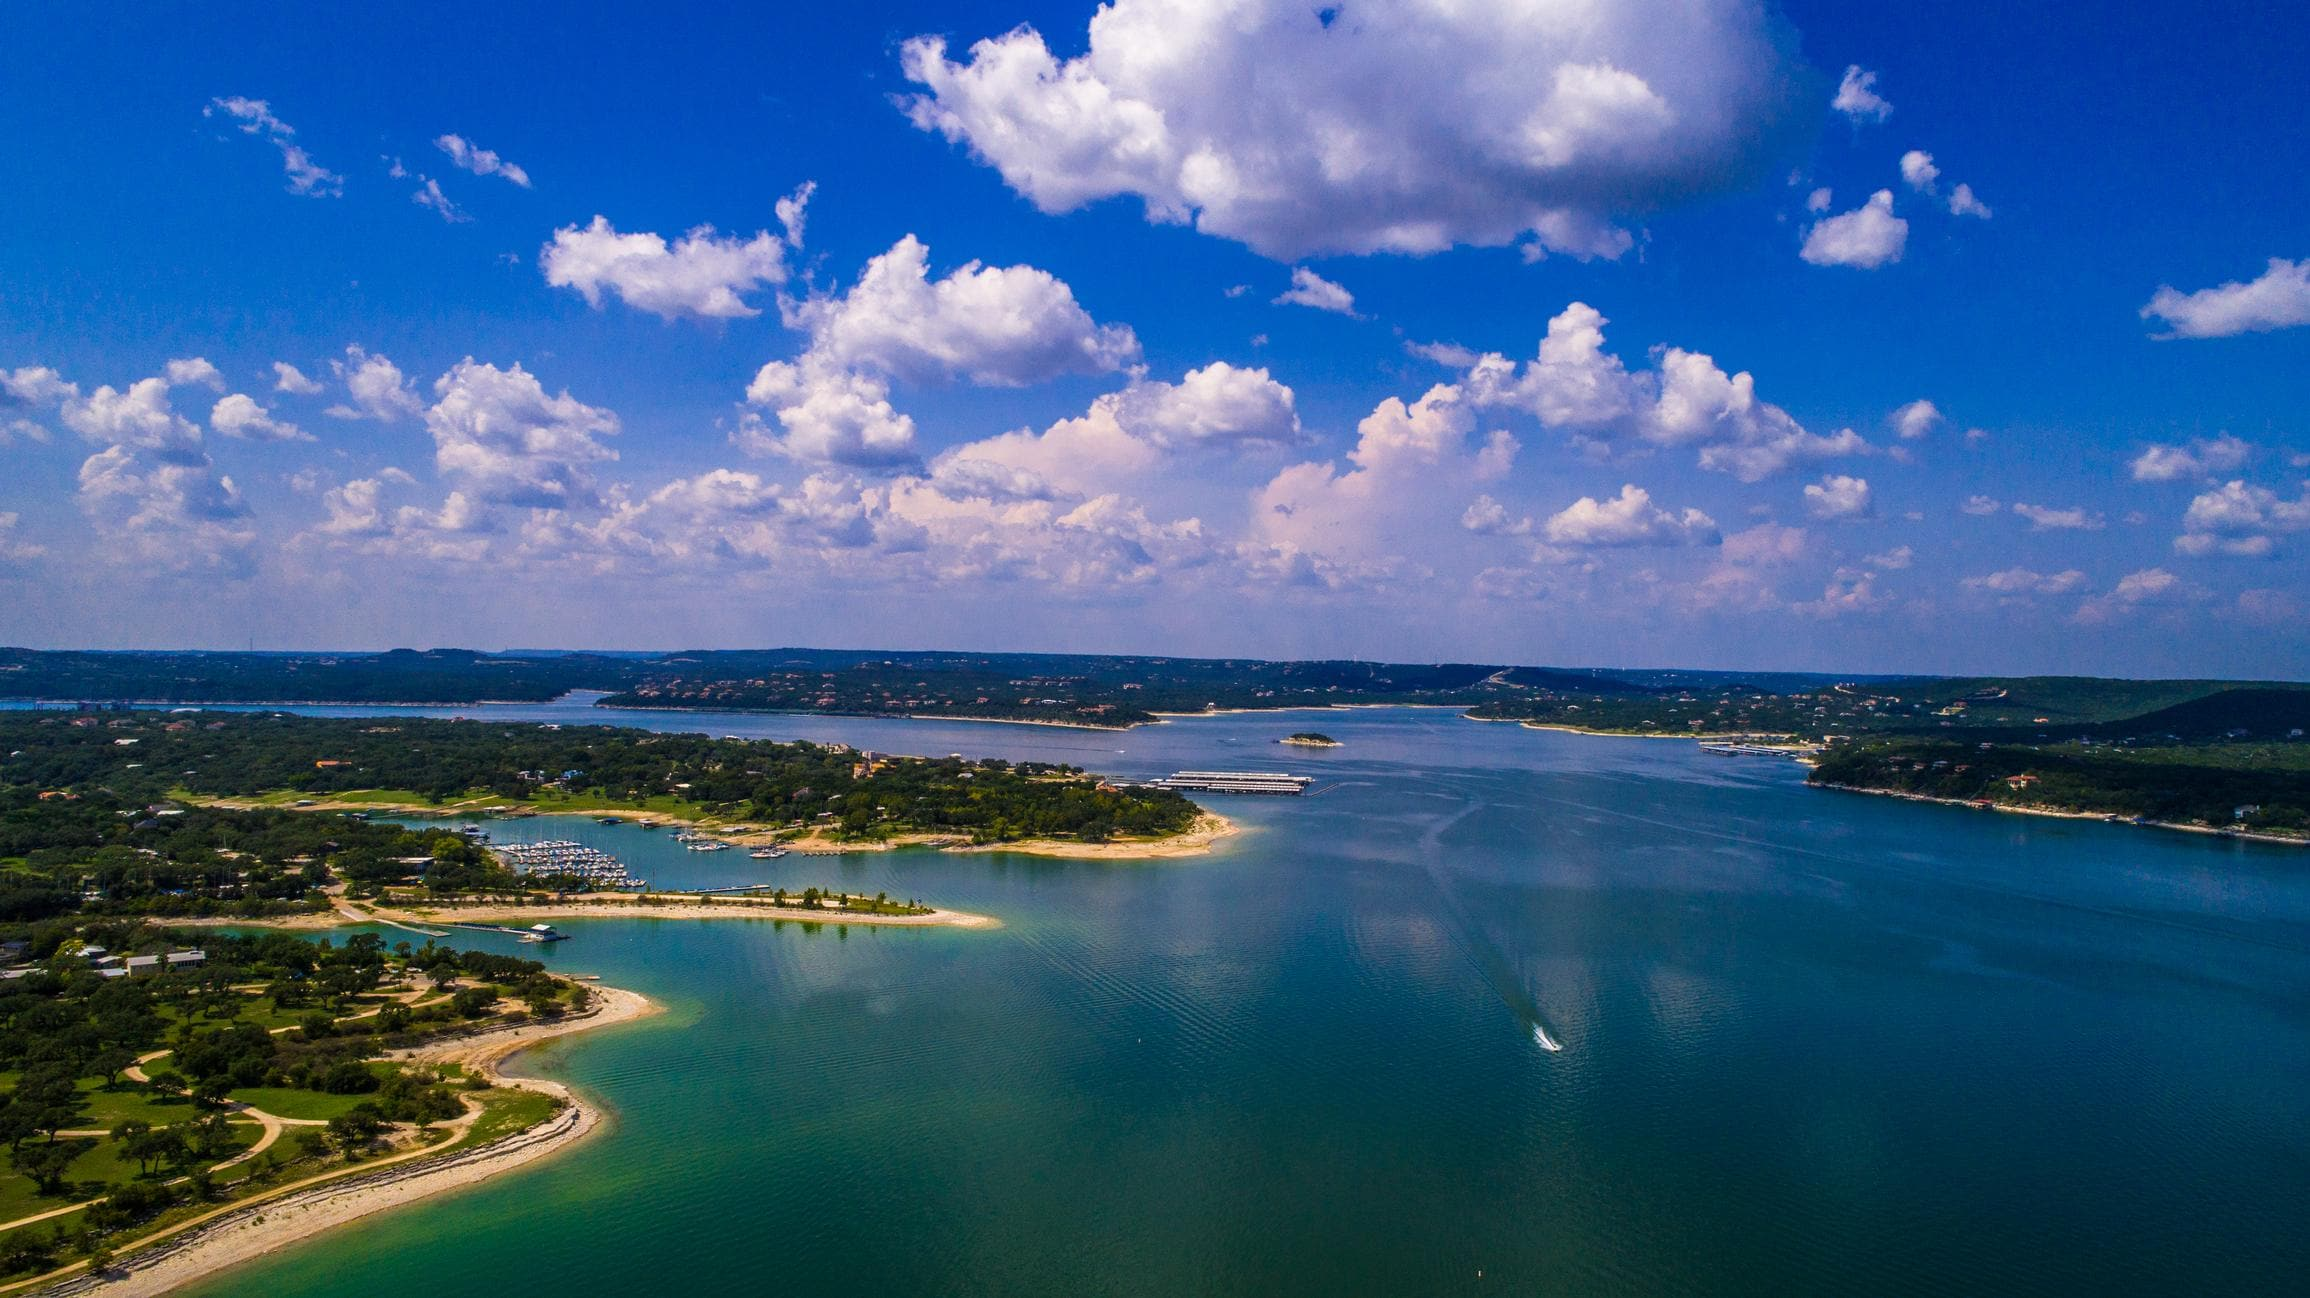 Rent a boat or jet skis and spend a fun day in the sun on Lake Travis.